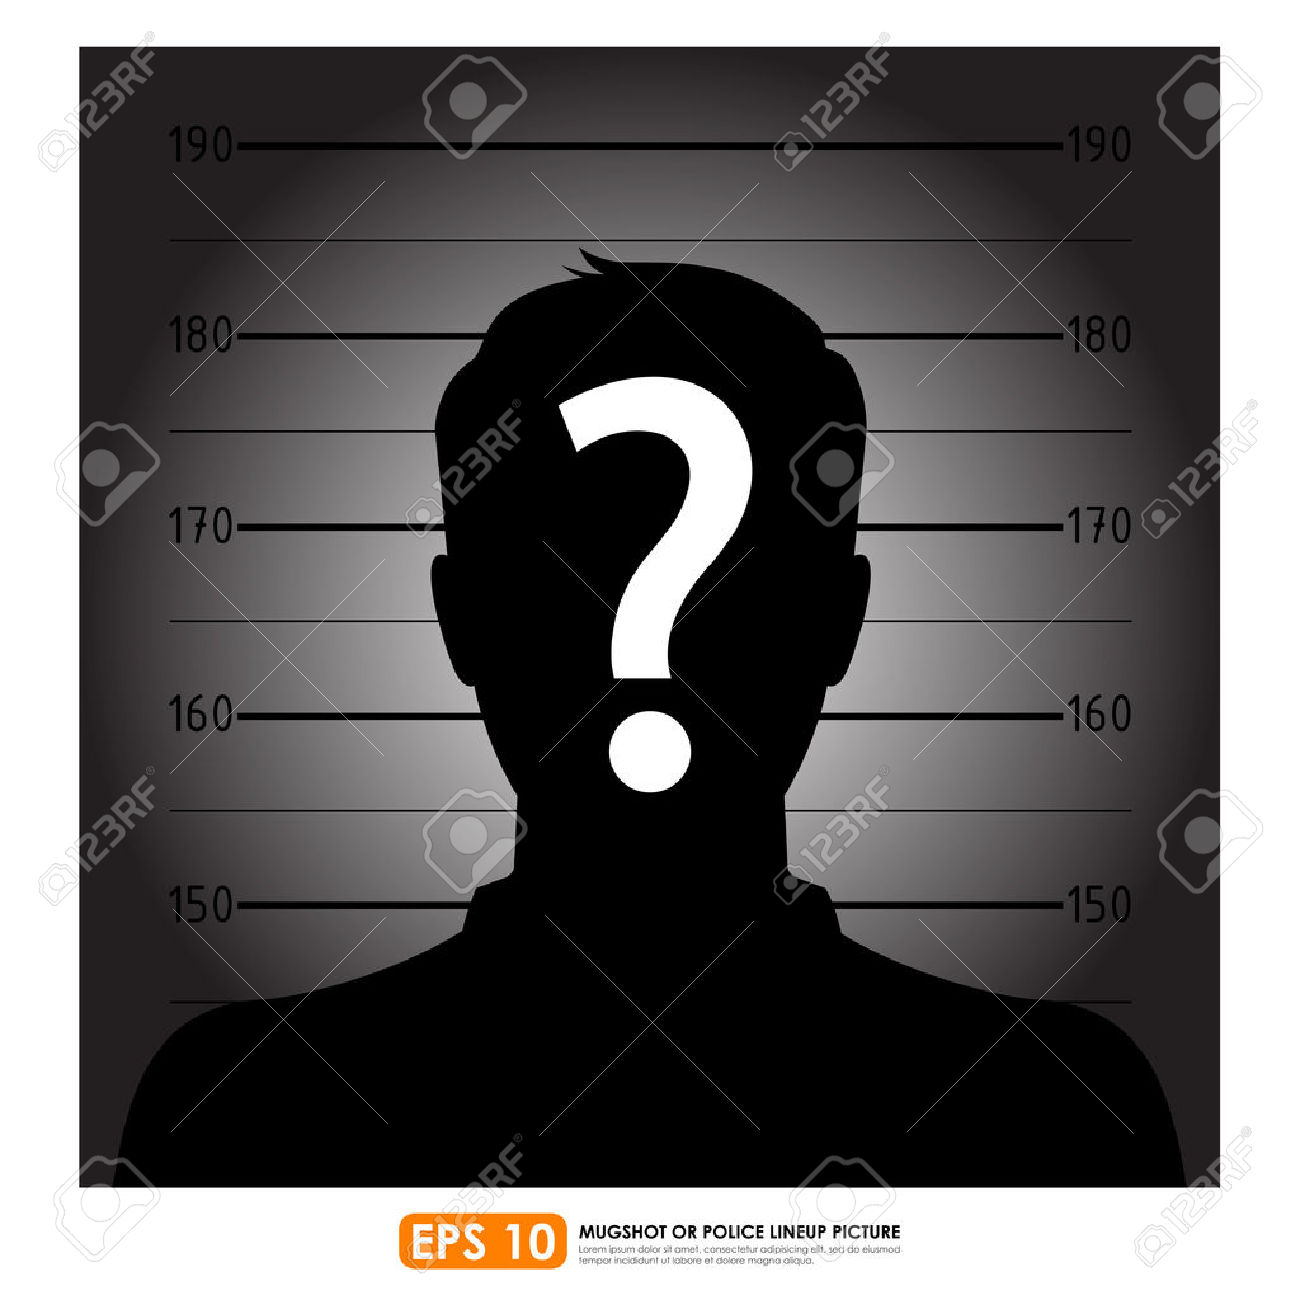 Prisoner number stock clipart image library download 244 Prison Mugshot Stock Vector Illustration And Royalty Free ... image library download